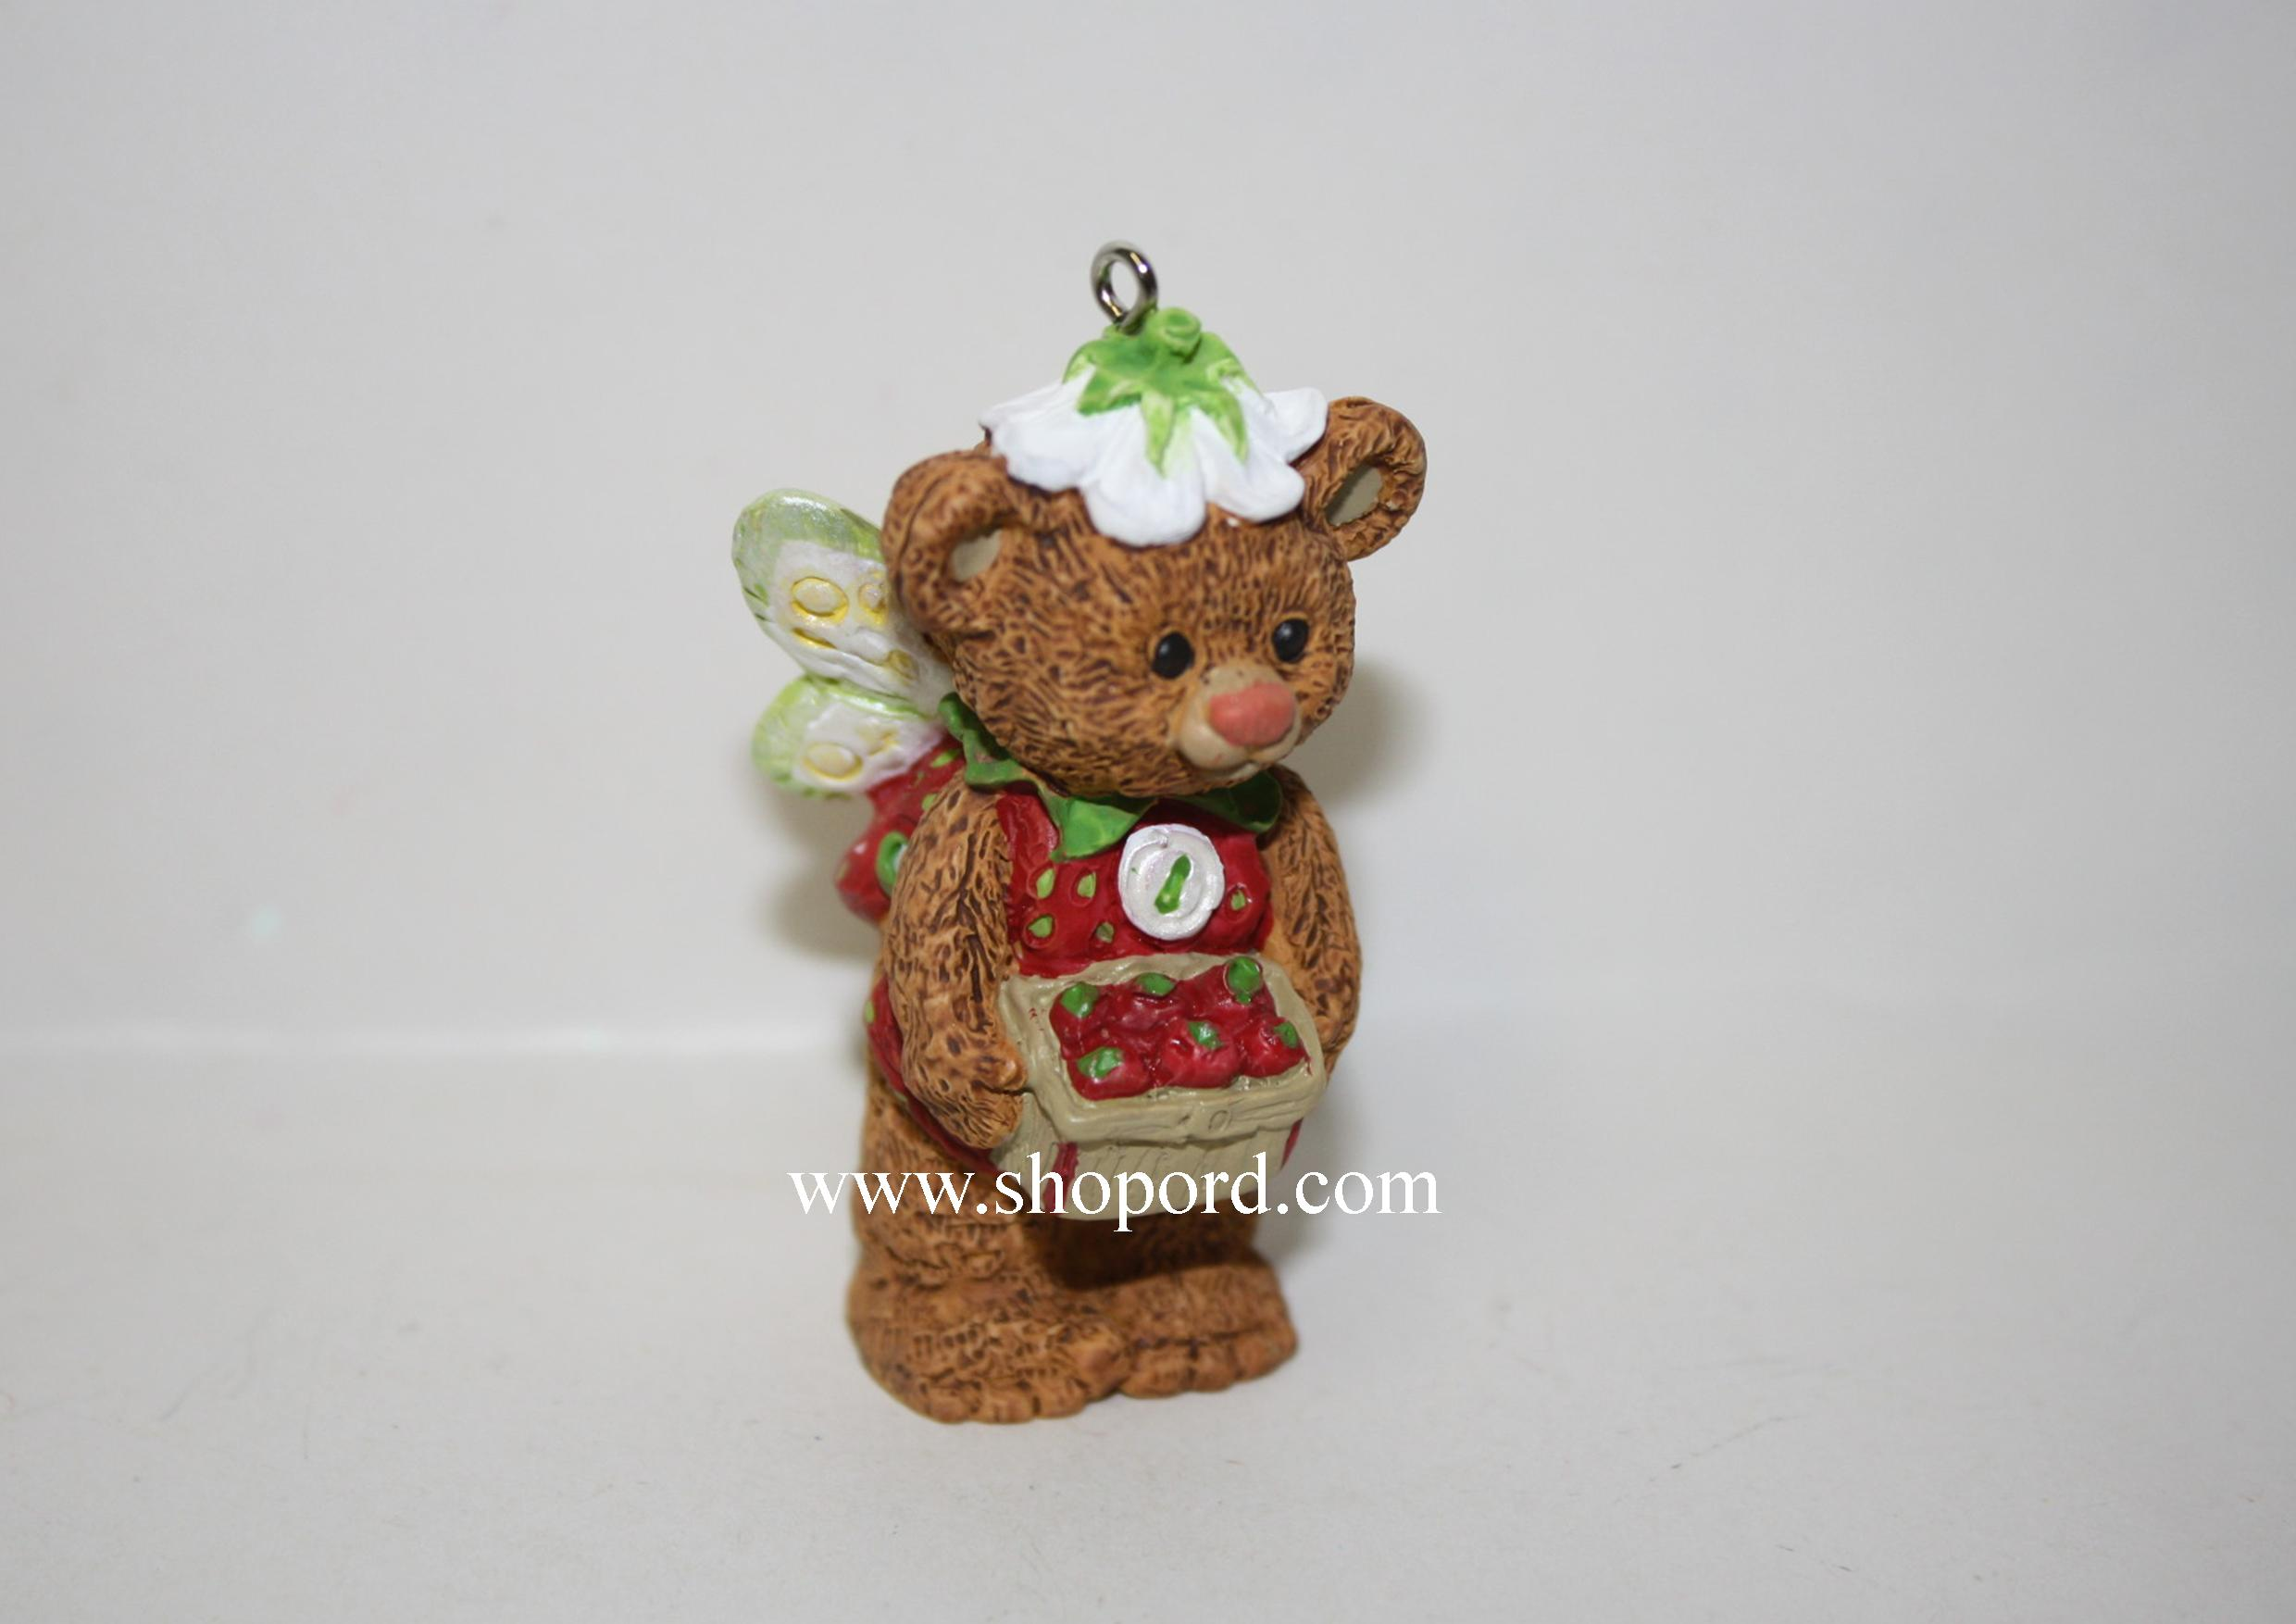 Hallmark 1999 Strawberry Spring Ornament Fairy Berry Bears 1st In The Series QEO8369 Damaged Box